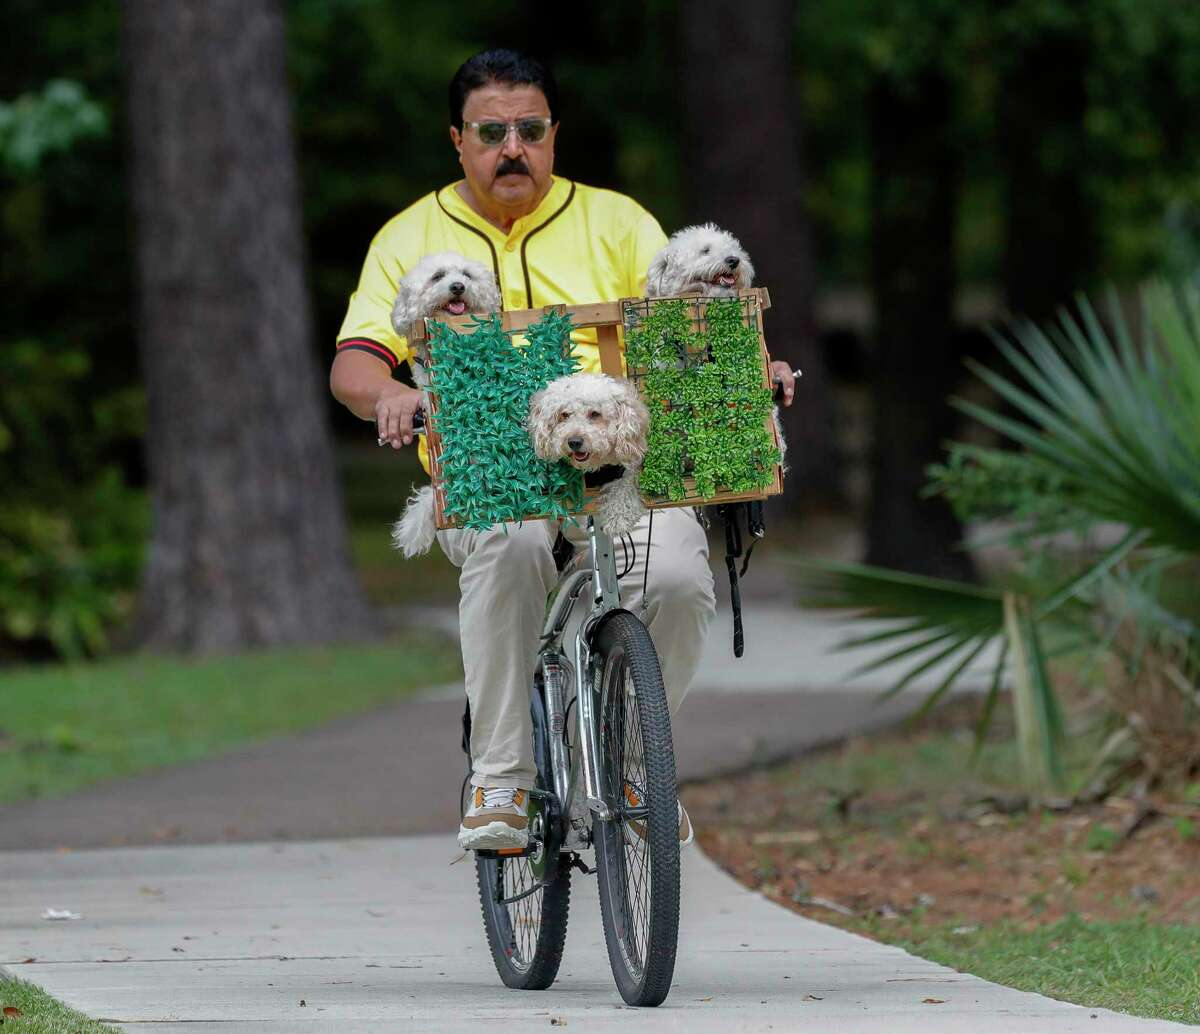 Jose 'Joe' Ruiz and his three poodles ride along Kingwood Drive, Monday, Sept. 27, 2021, in Kingwood. Last October, the retired railroad worker began riding with his dogs and their custom-made carrier around Kingwood and can be spotted most evenings. 'Last year with the pandemic and the election there wasn't a lot of happiness or joy.' Ruiz said. 'All I want to do is make people happy - to laugh. If I've done that, even if I don't see their faces as they drive past, I feel like I've done my job.'